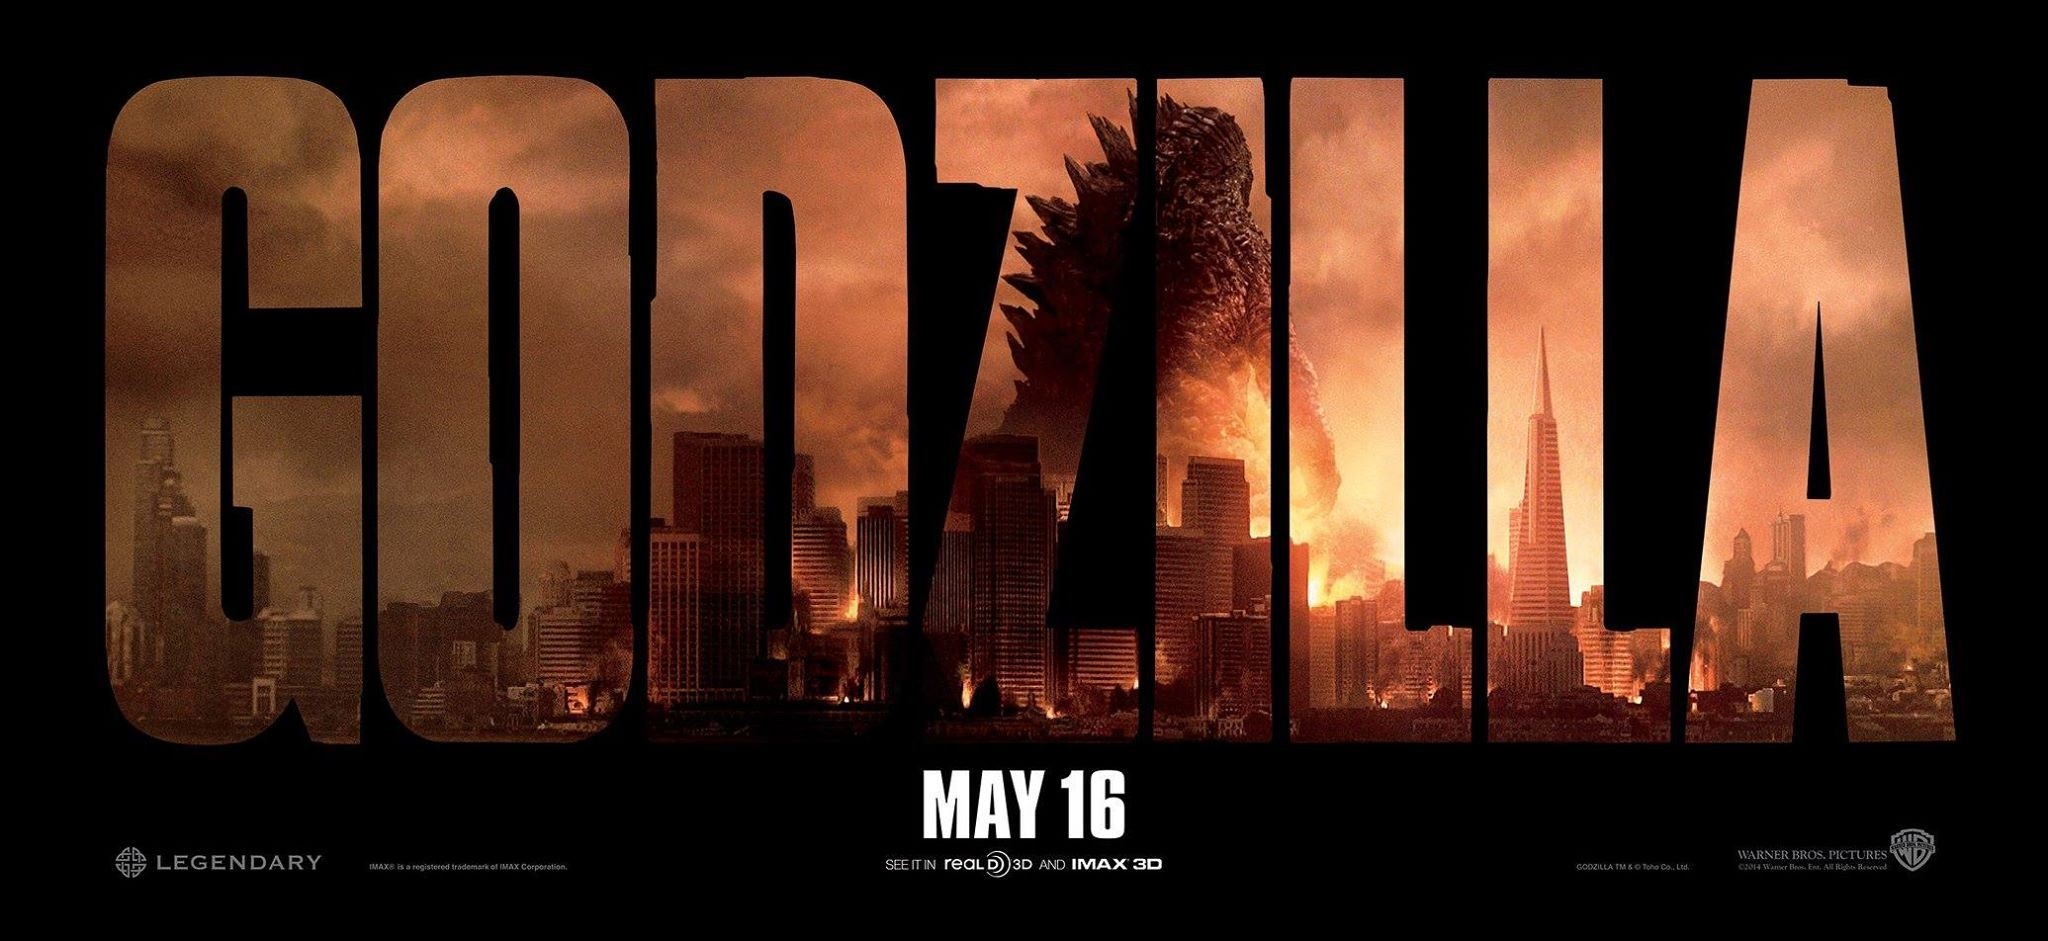 Godzilla-Official Poster Banner PROMO XXLG-26MARCO2014